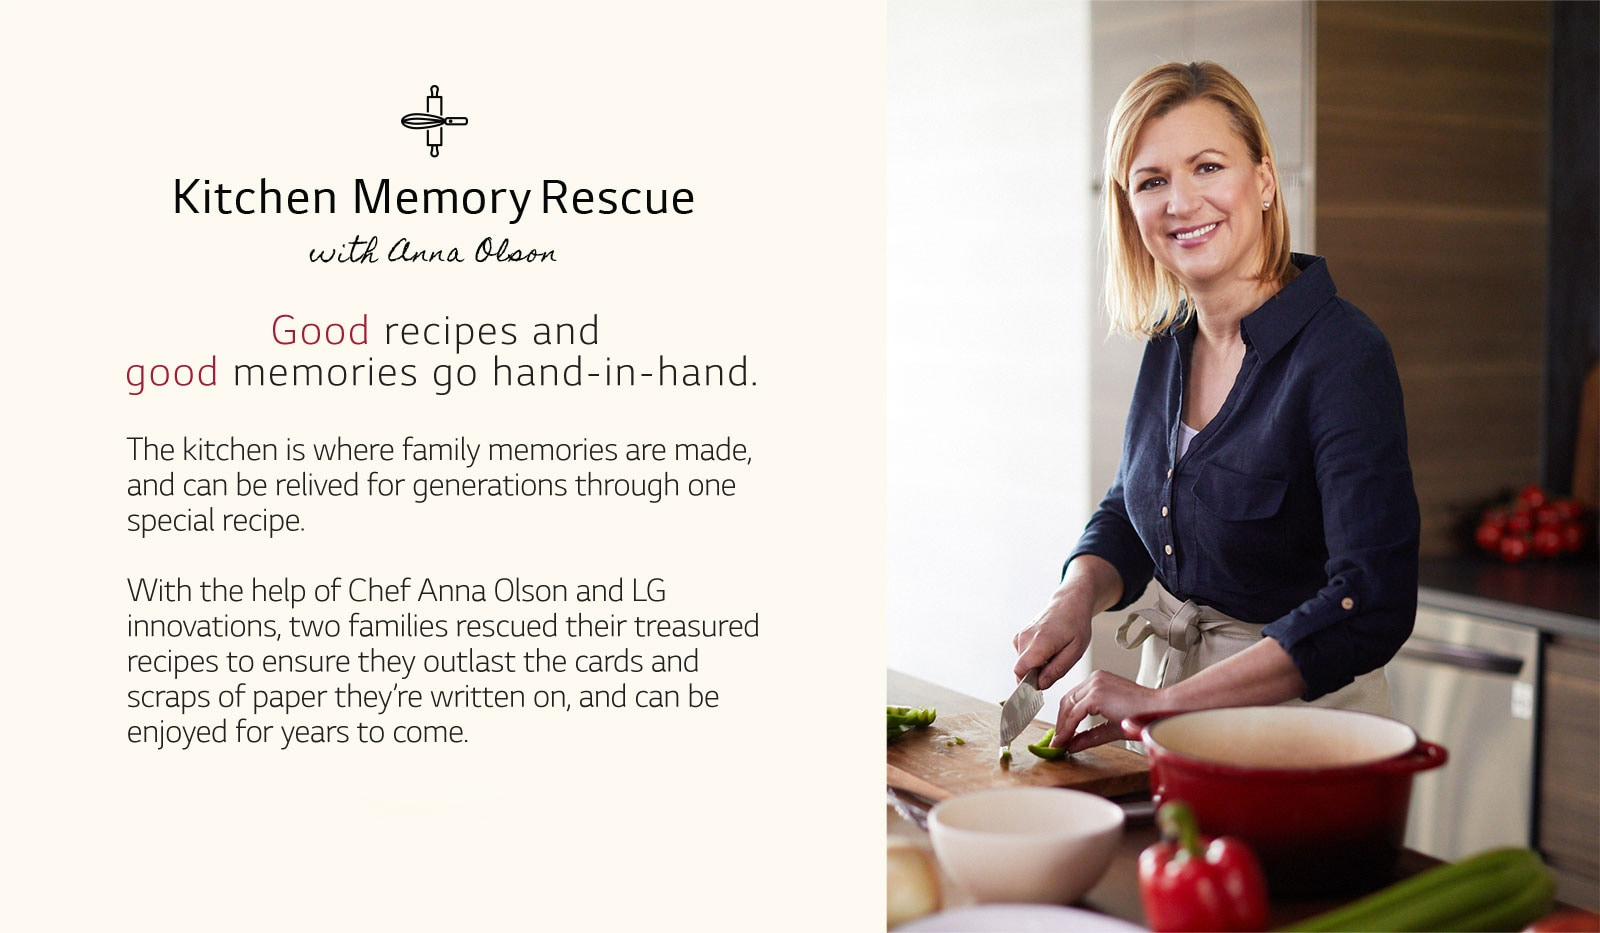 Kitchen Memory Rescue. Good recipes and good memories go hand-in-hand